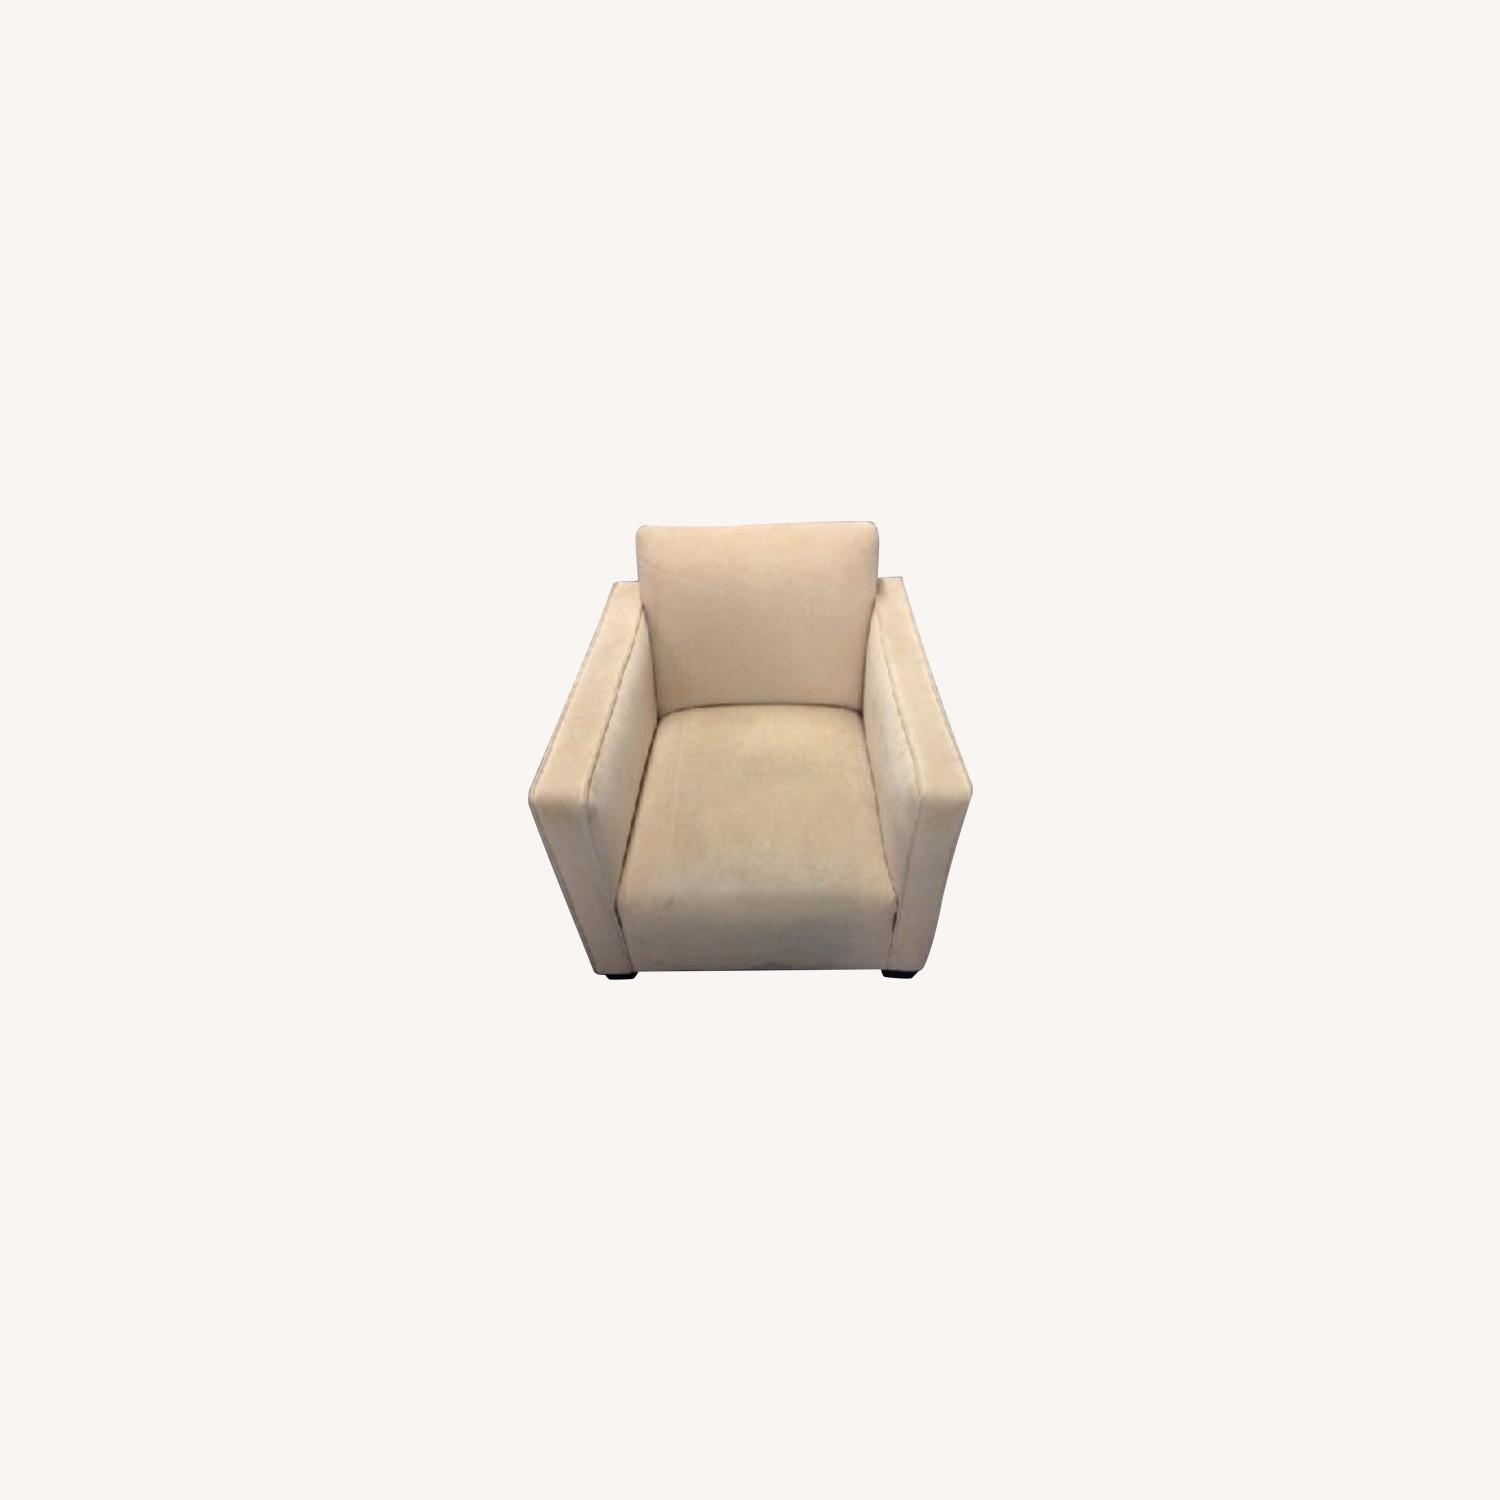 Cream Colored SUEDE Chair - image-0